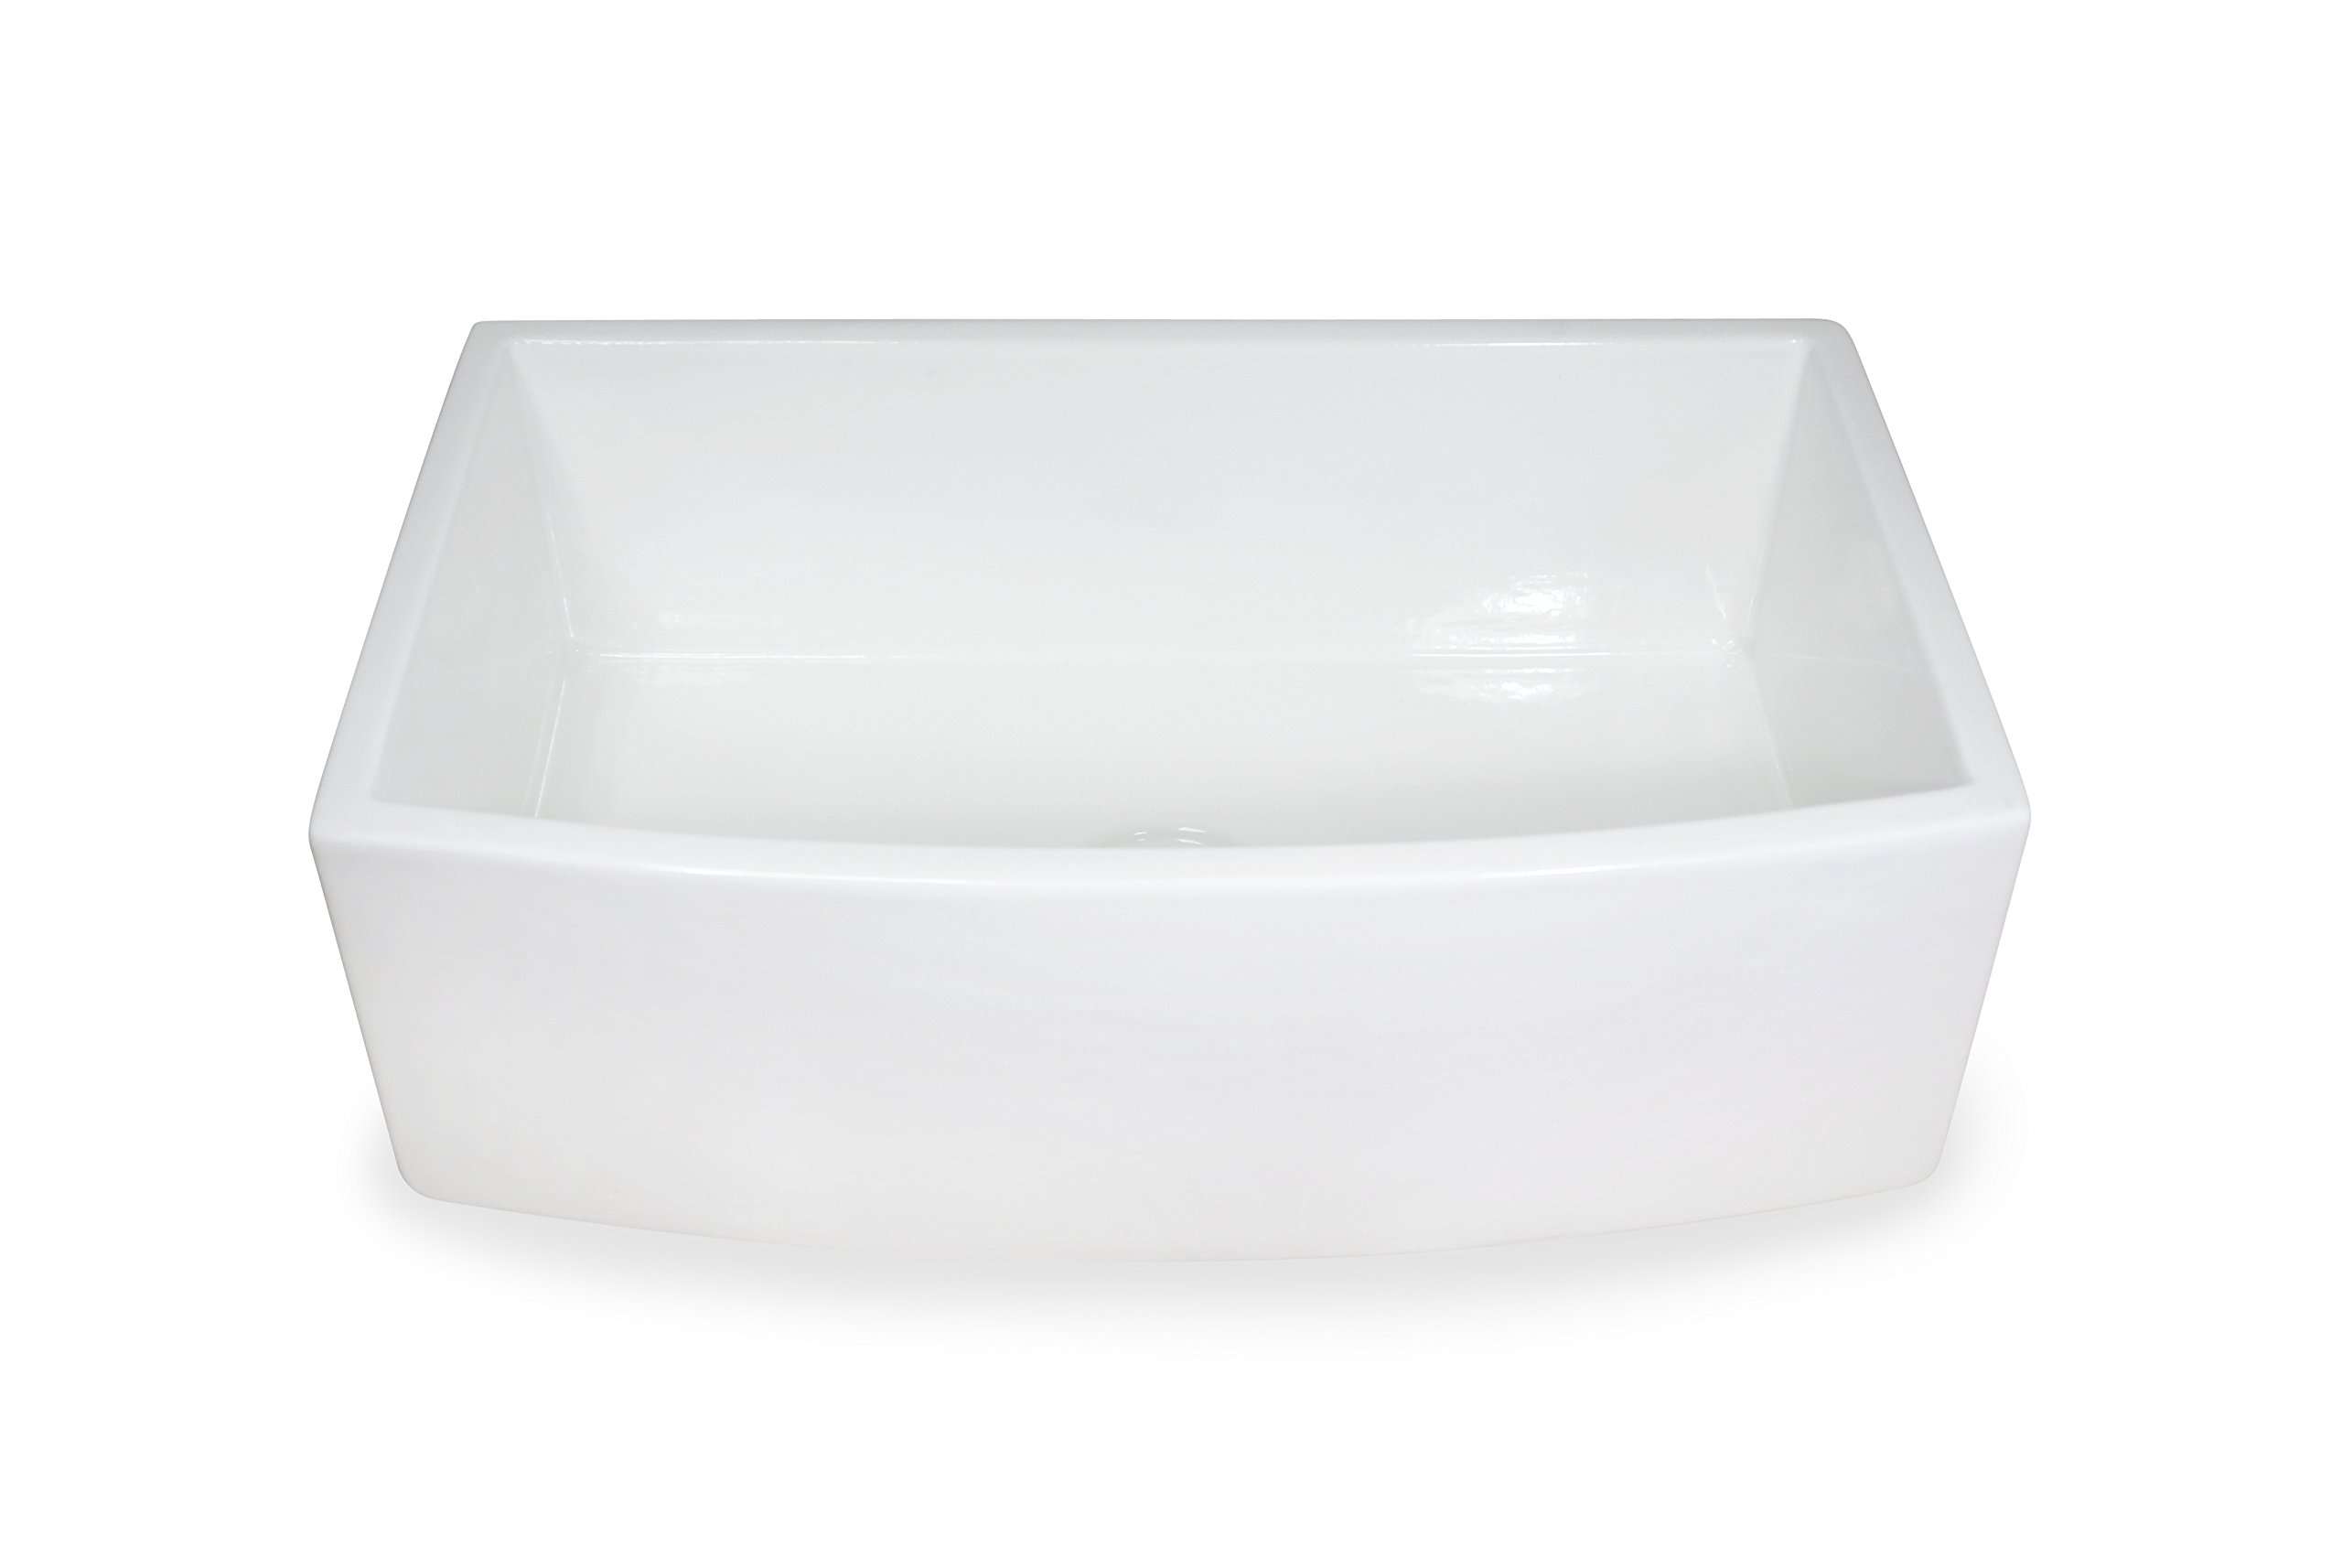 Regallo TRUE FIRECLAY Reversible 30'' Apron Front Sink by MOCCOA, Farmhouse Kitchen Sink White … by MOCCOA (Image #2)